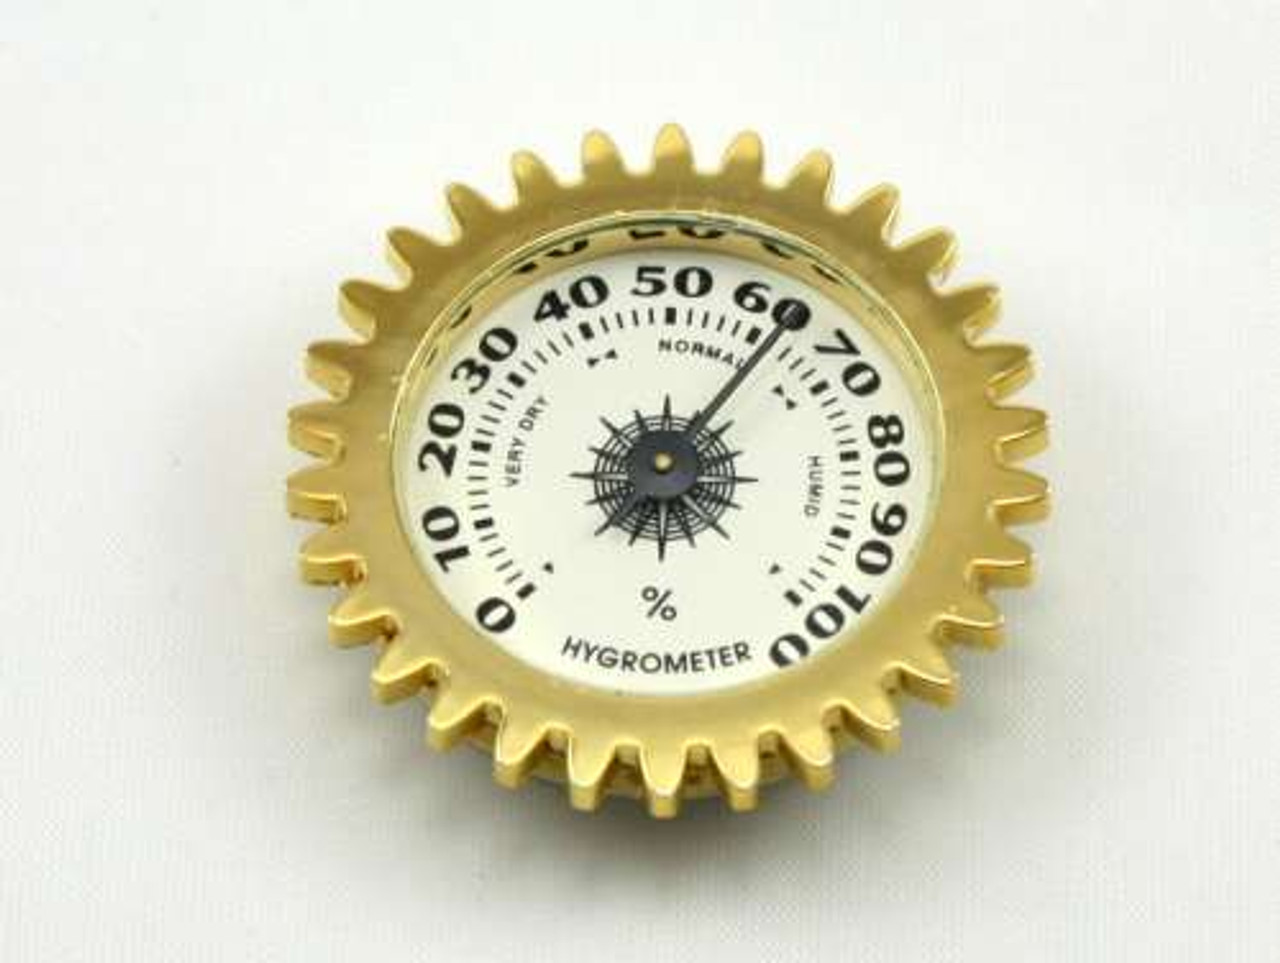 Golden Gear Analog Cigar Hygrometer